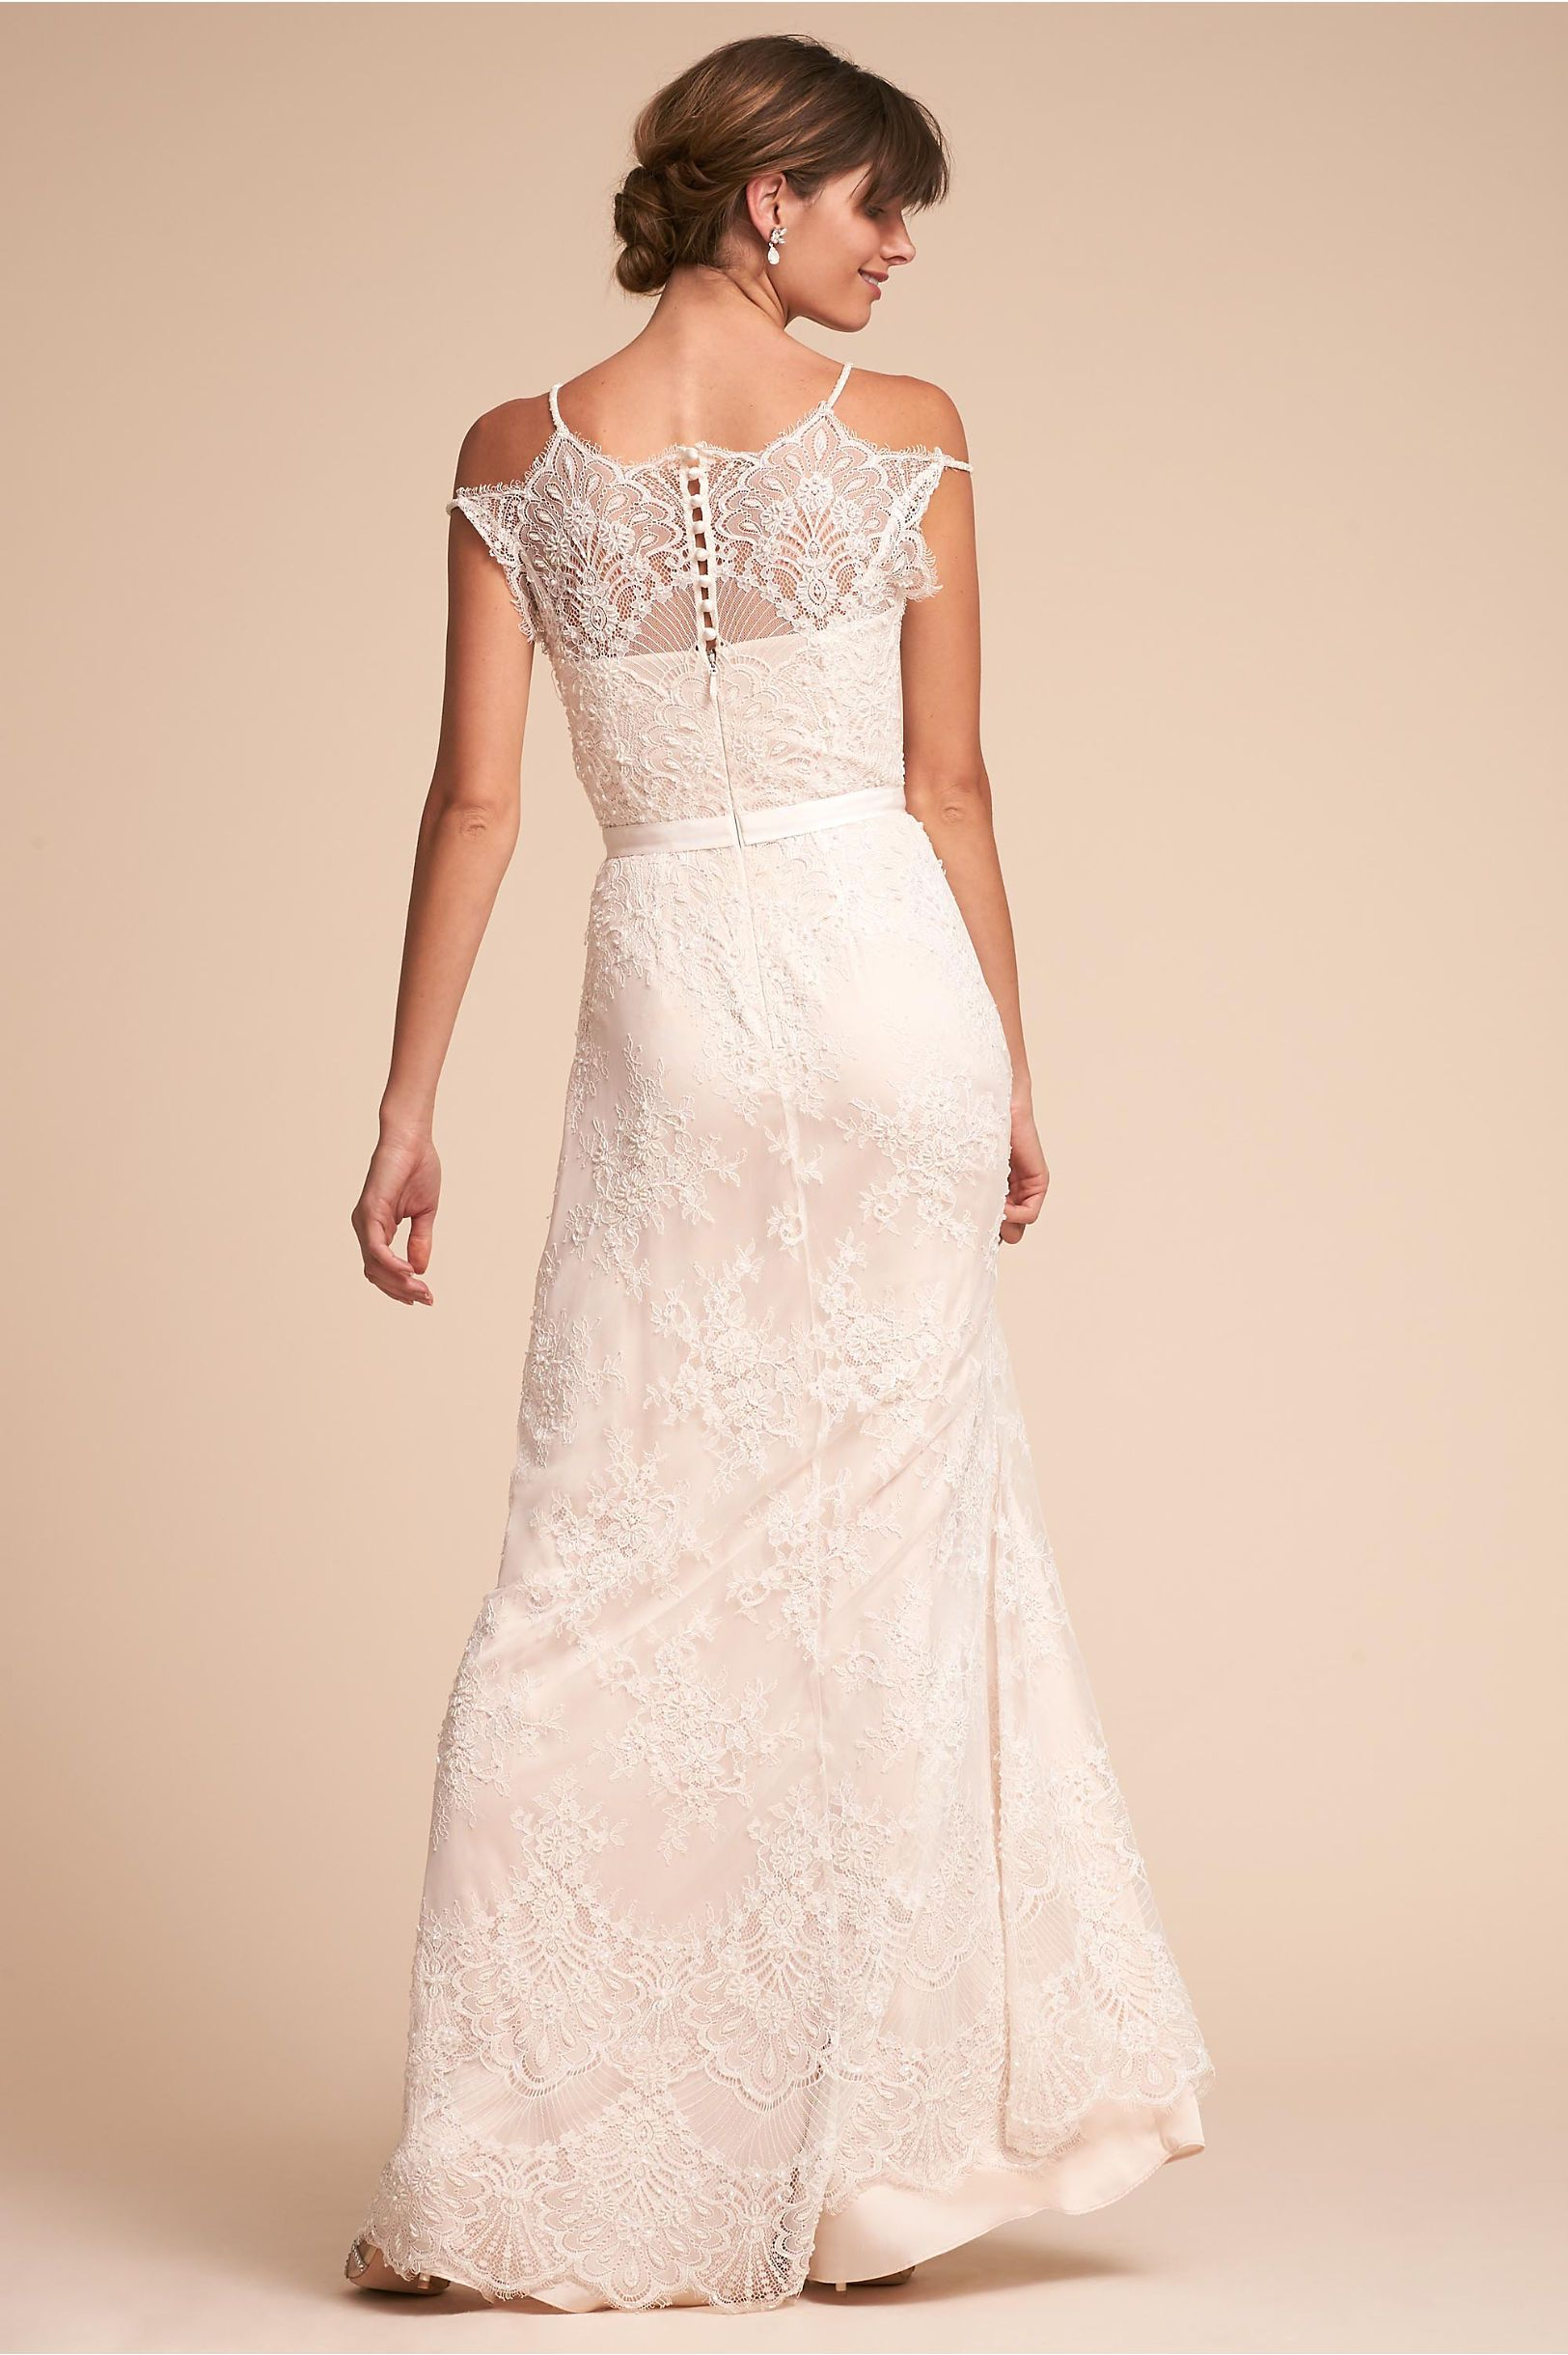 38f6a7423e5 BHLDN's Catherine Deane Karla Gown in Ivory | dress | Wedding gowns ...